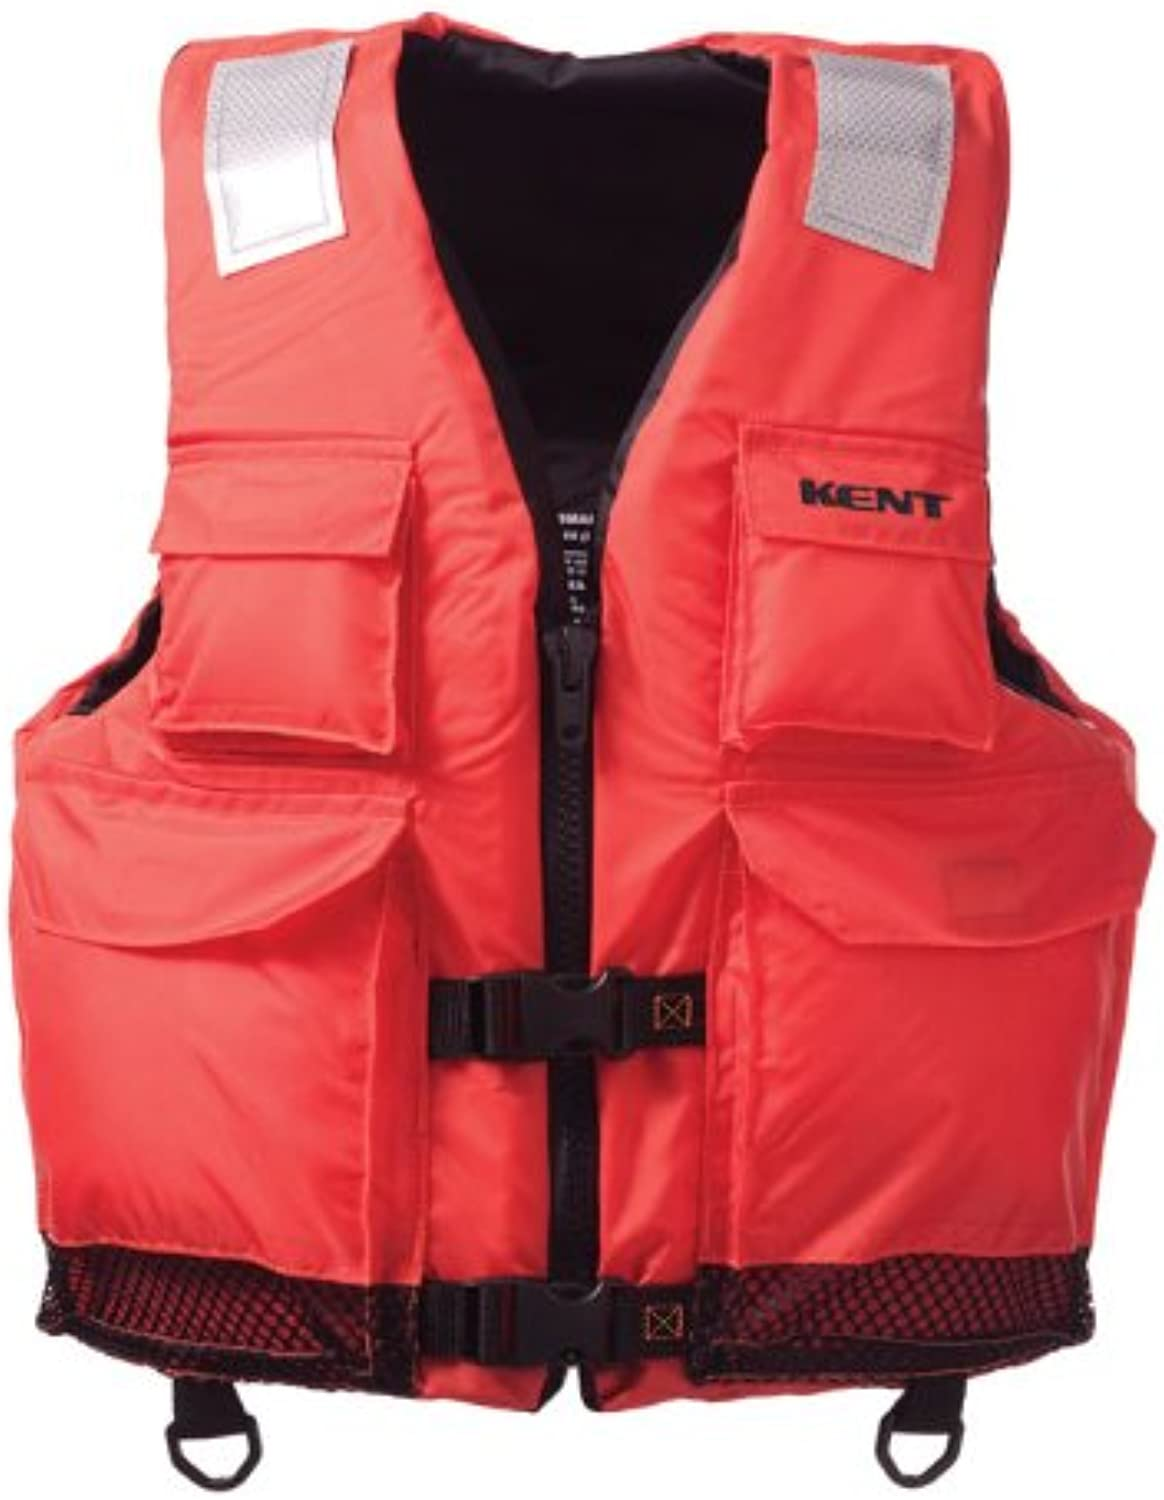 Absolute Outdoor Kent Elite Dual Size Commercial Life Vest  Persons Over 90Pounds